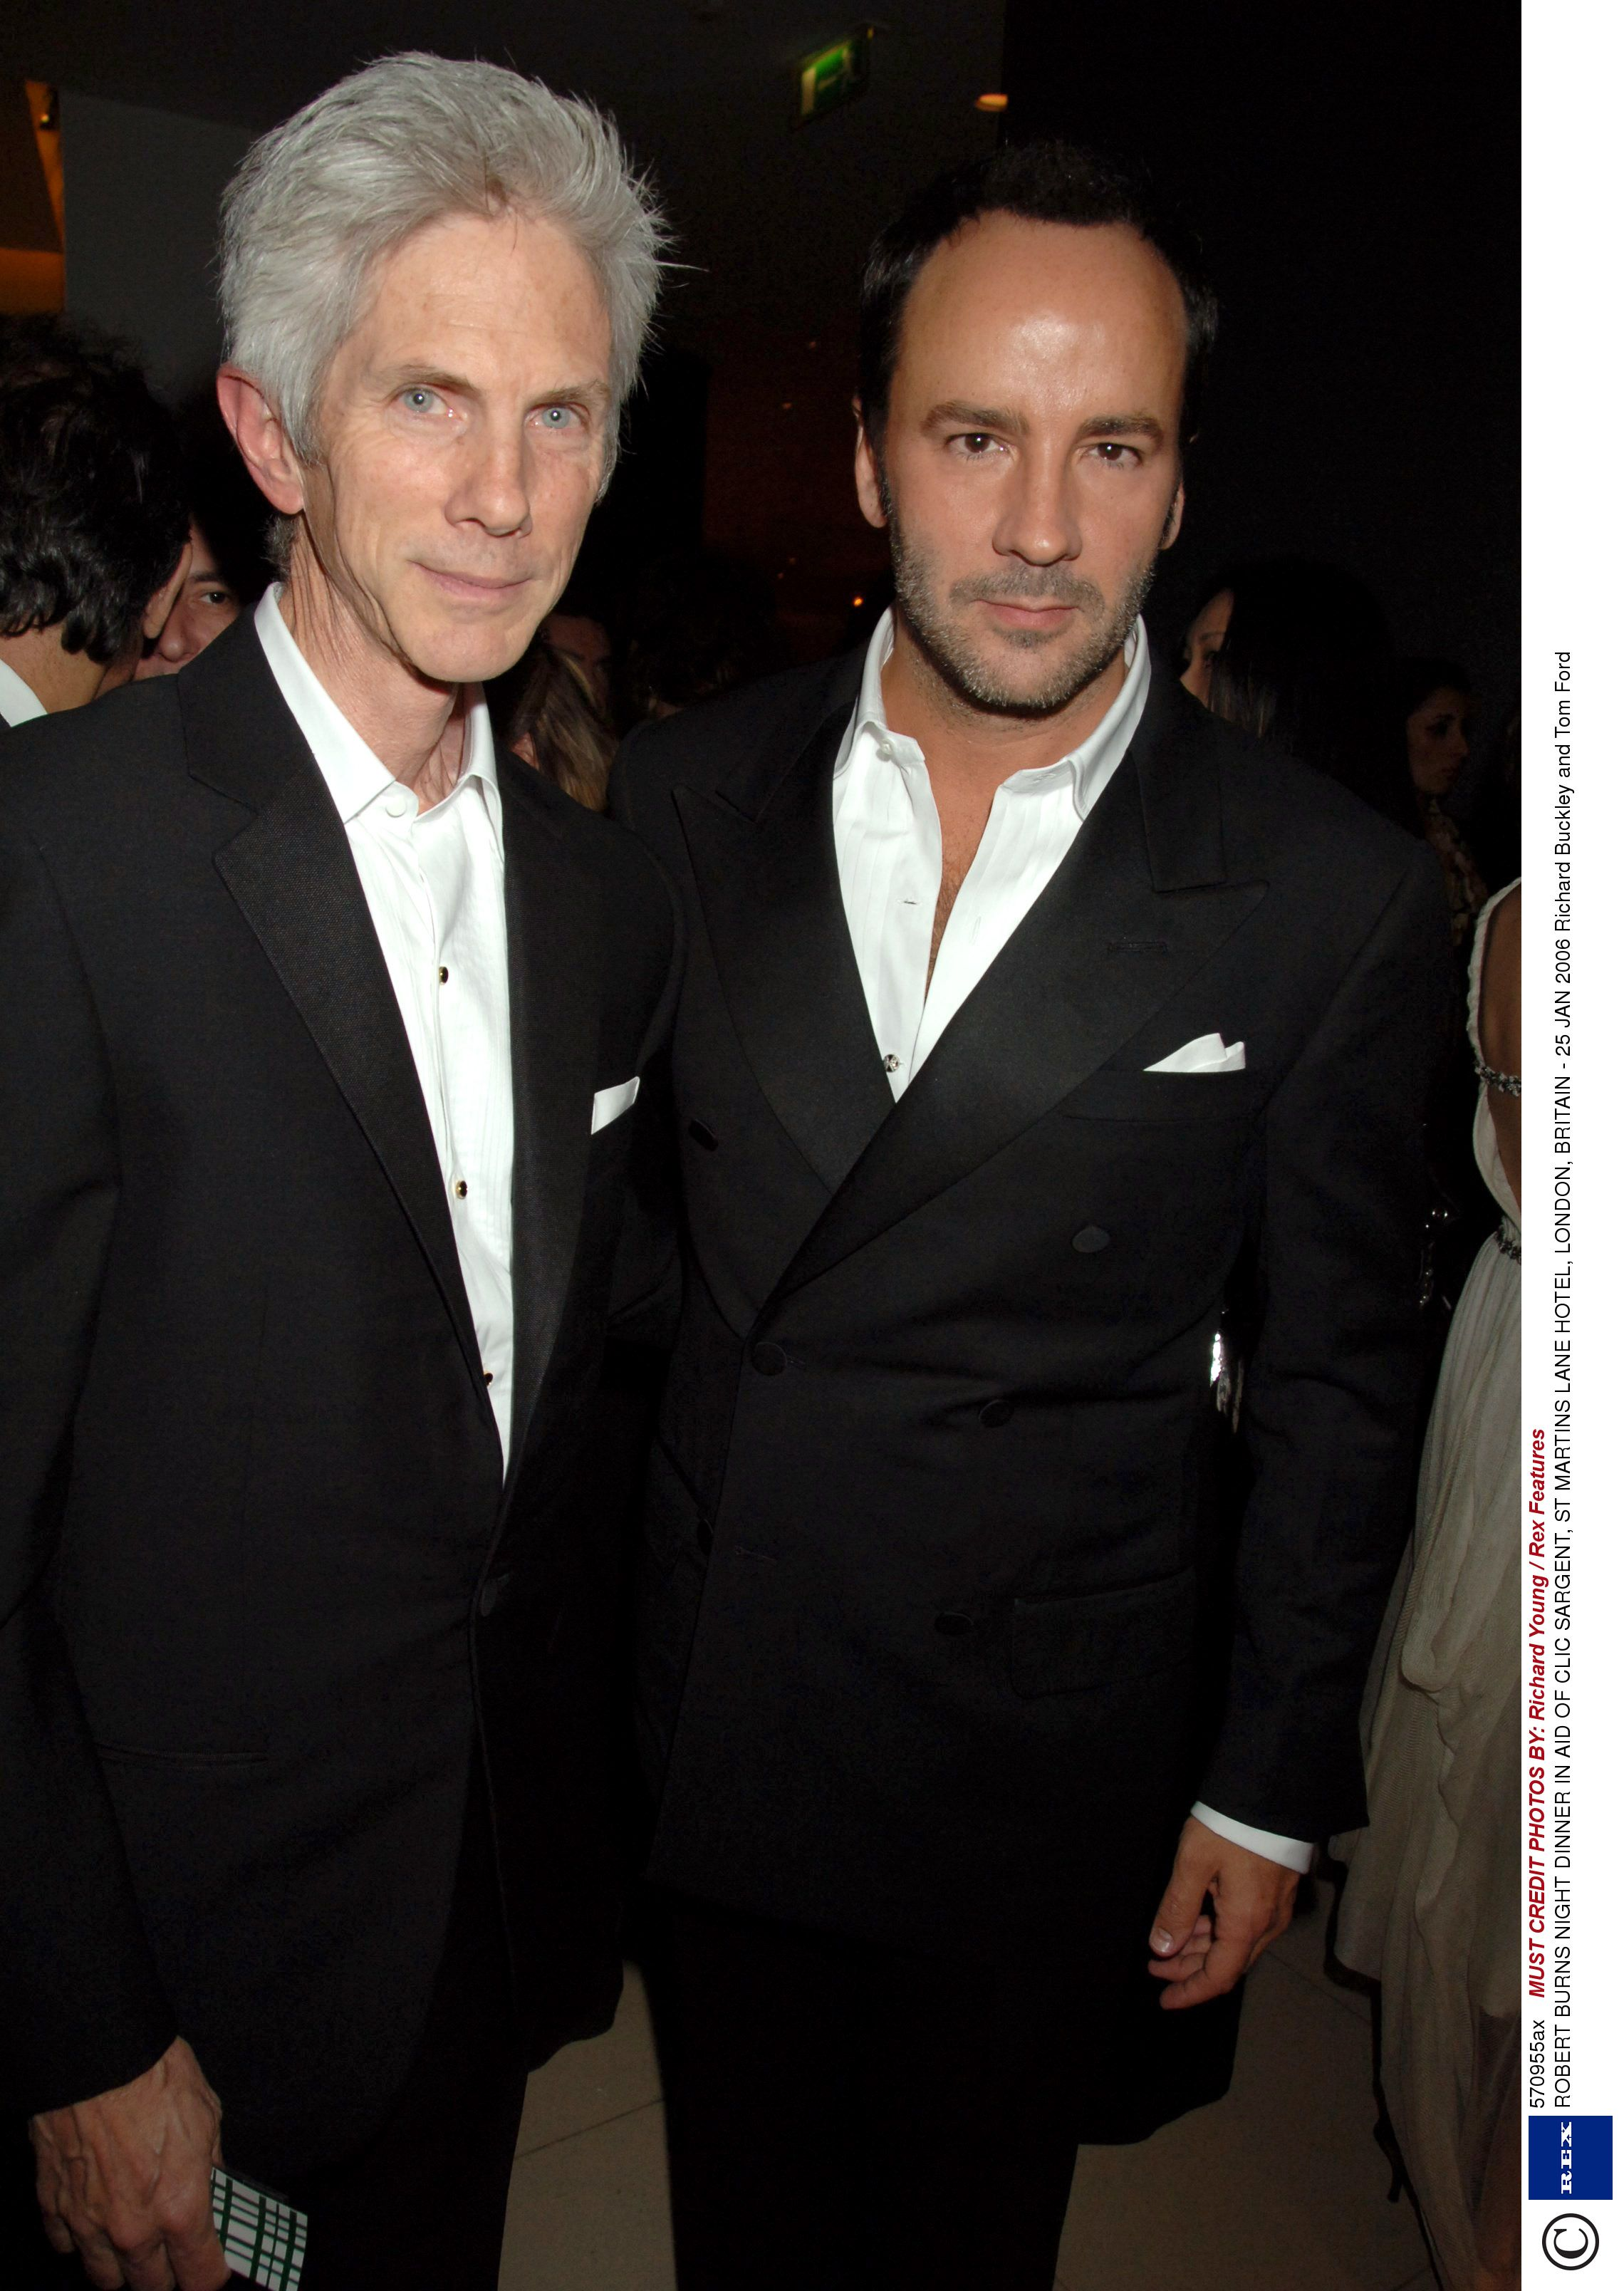 d204365f4083 Tom Ford marries longterm partner Richard Buckley